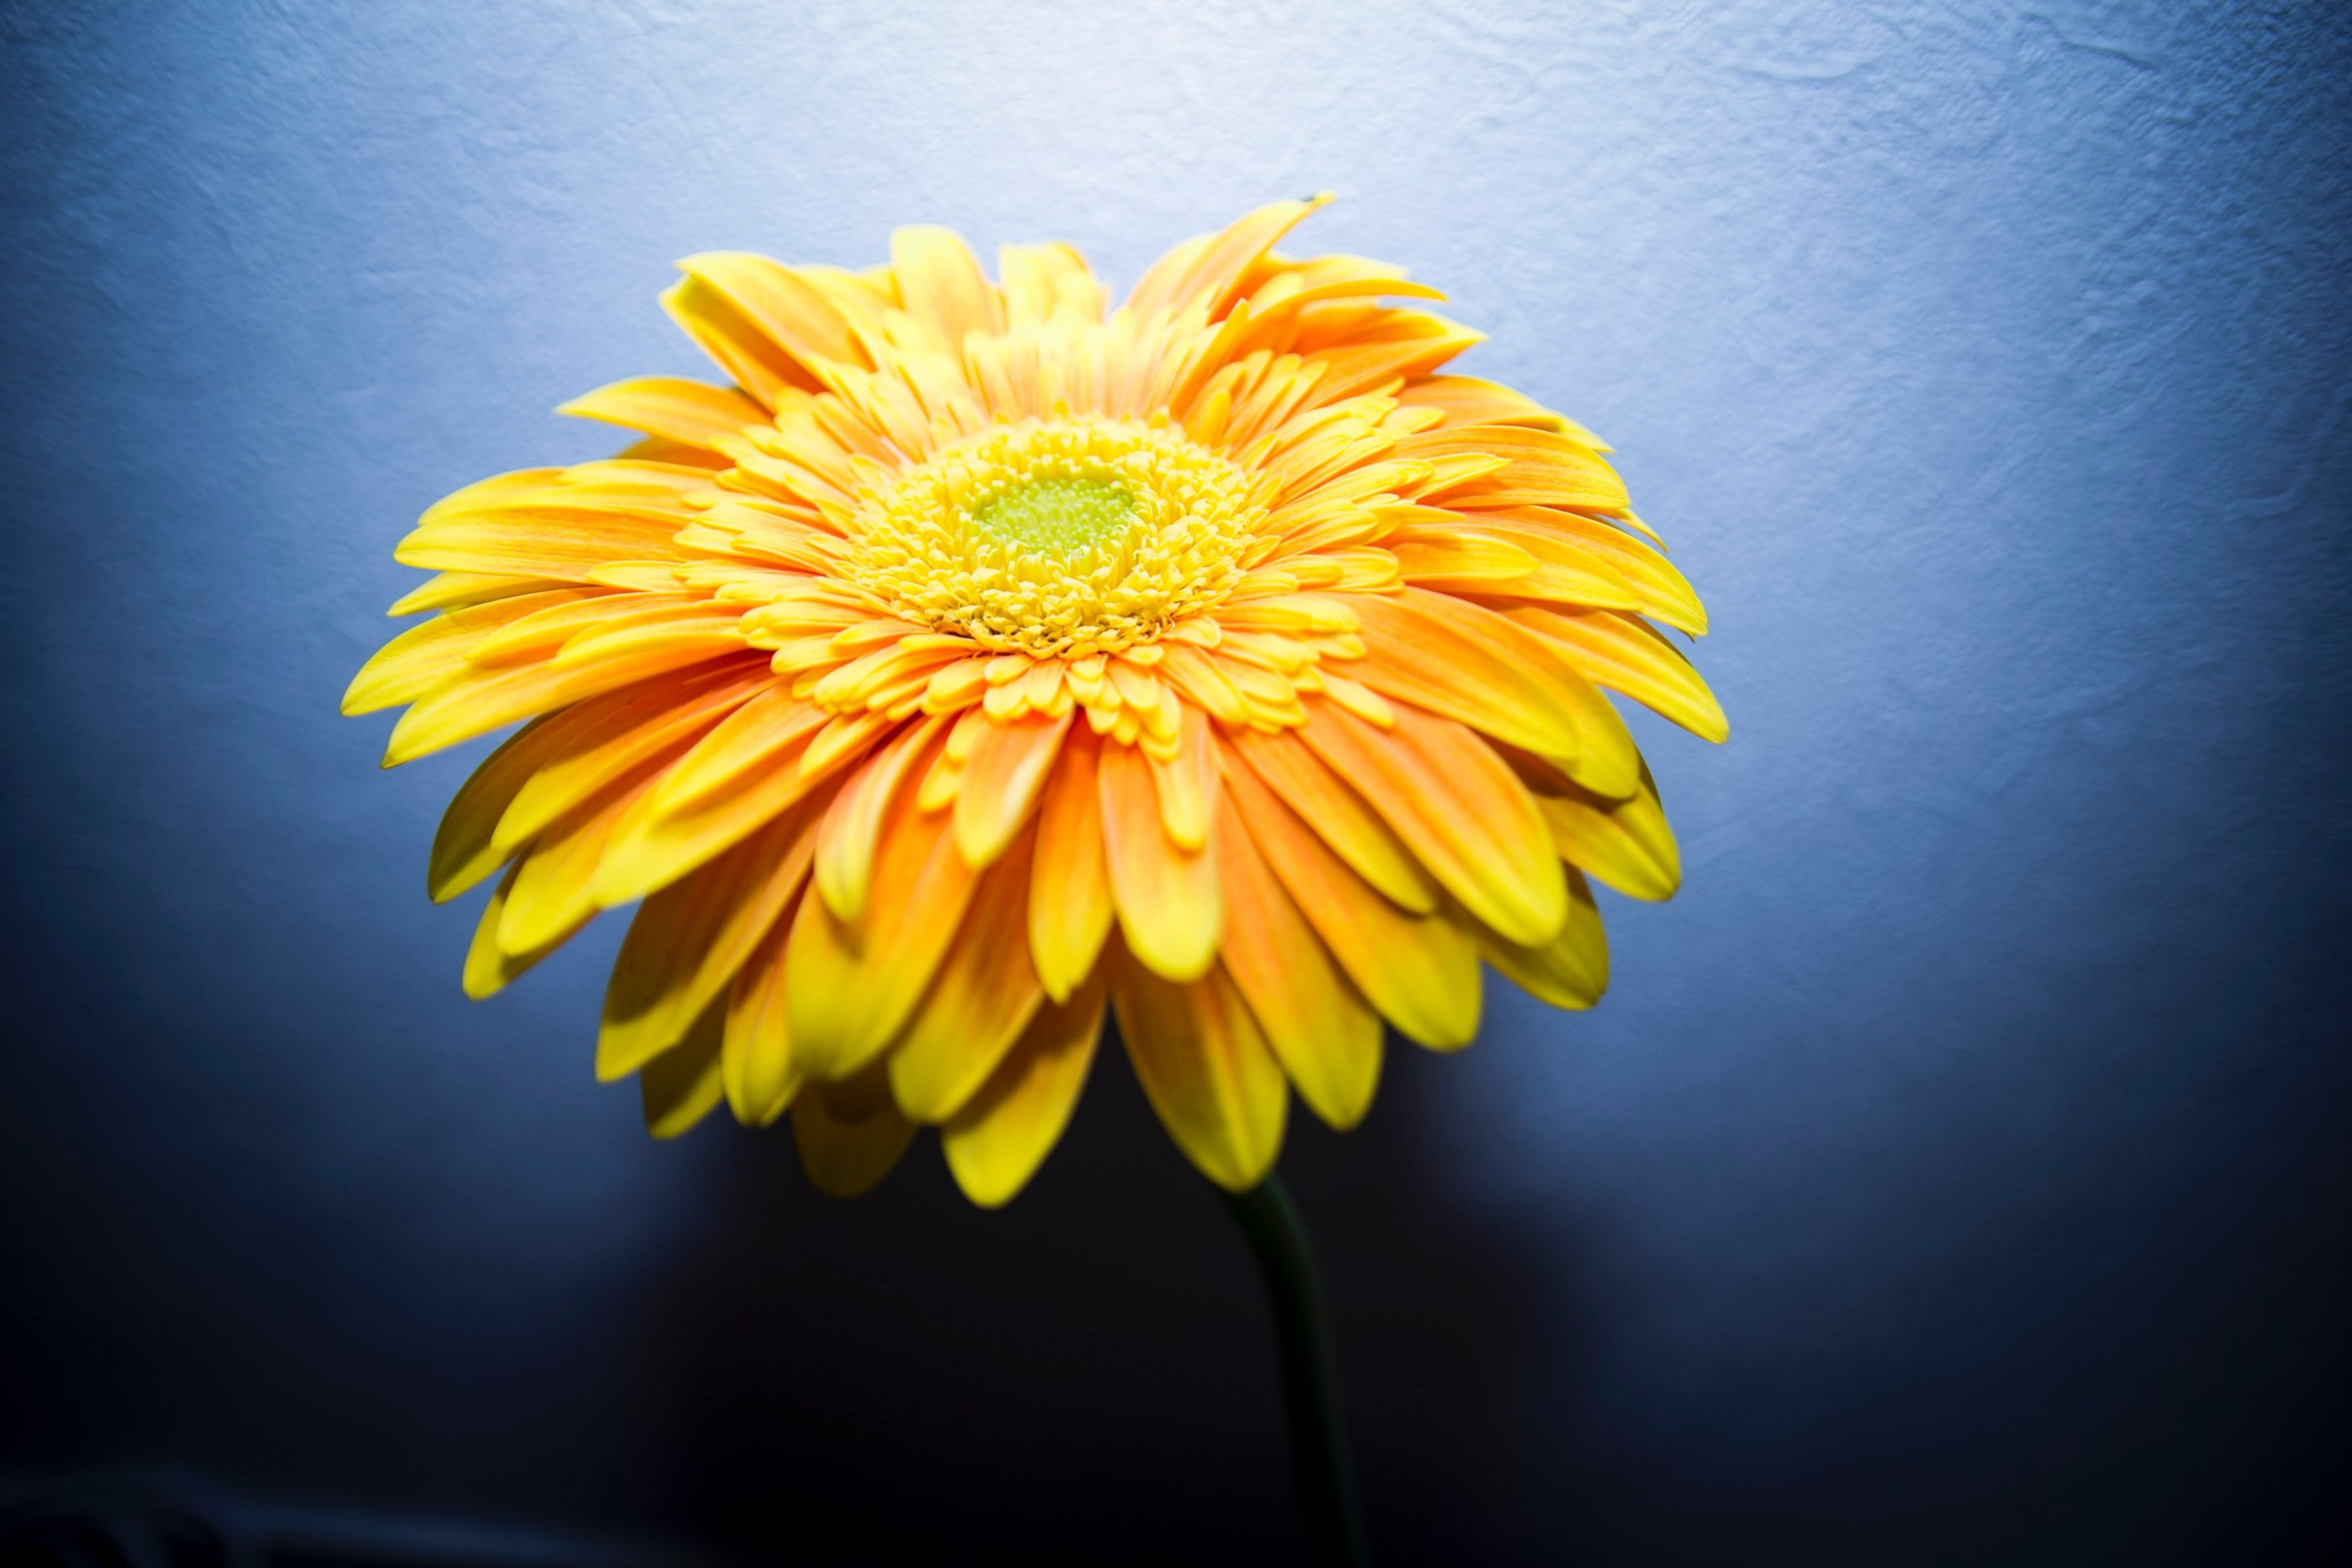 flower, yellow, petal, flower head, freshness, fragility, beauty in nature, sunflower, single flower, close-up, growth, pollen, nature, studio shot, blooming, stem, plant, indoors, blossom, in bloom